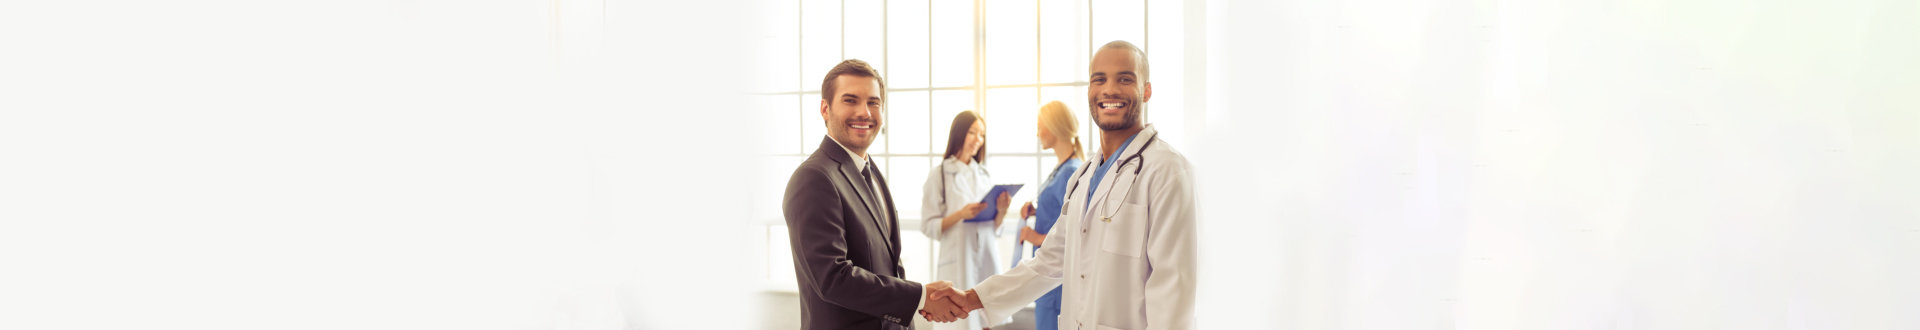 doctor shaking hands with a businessman